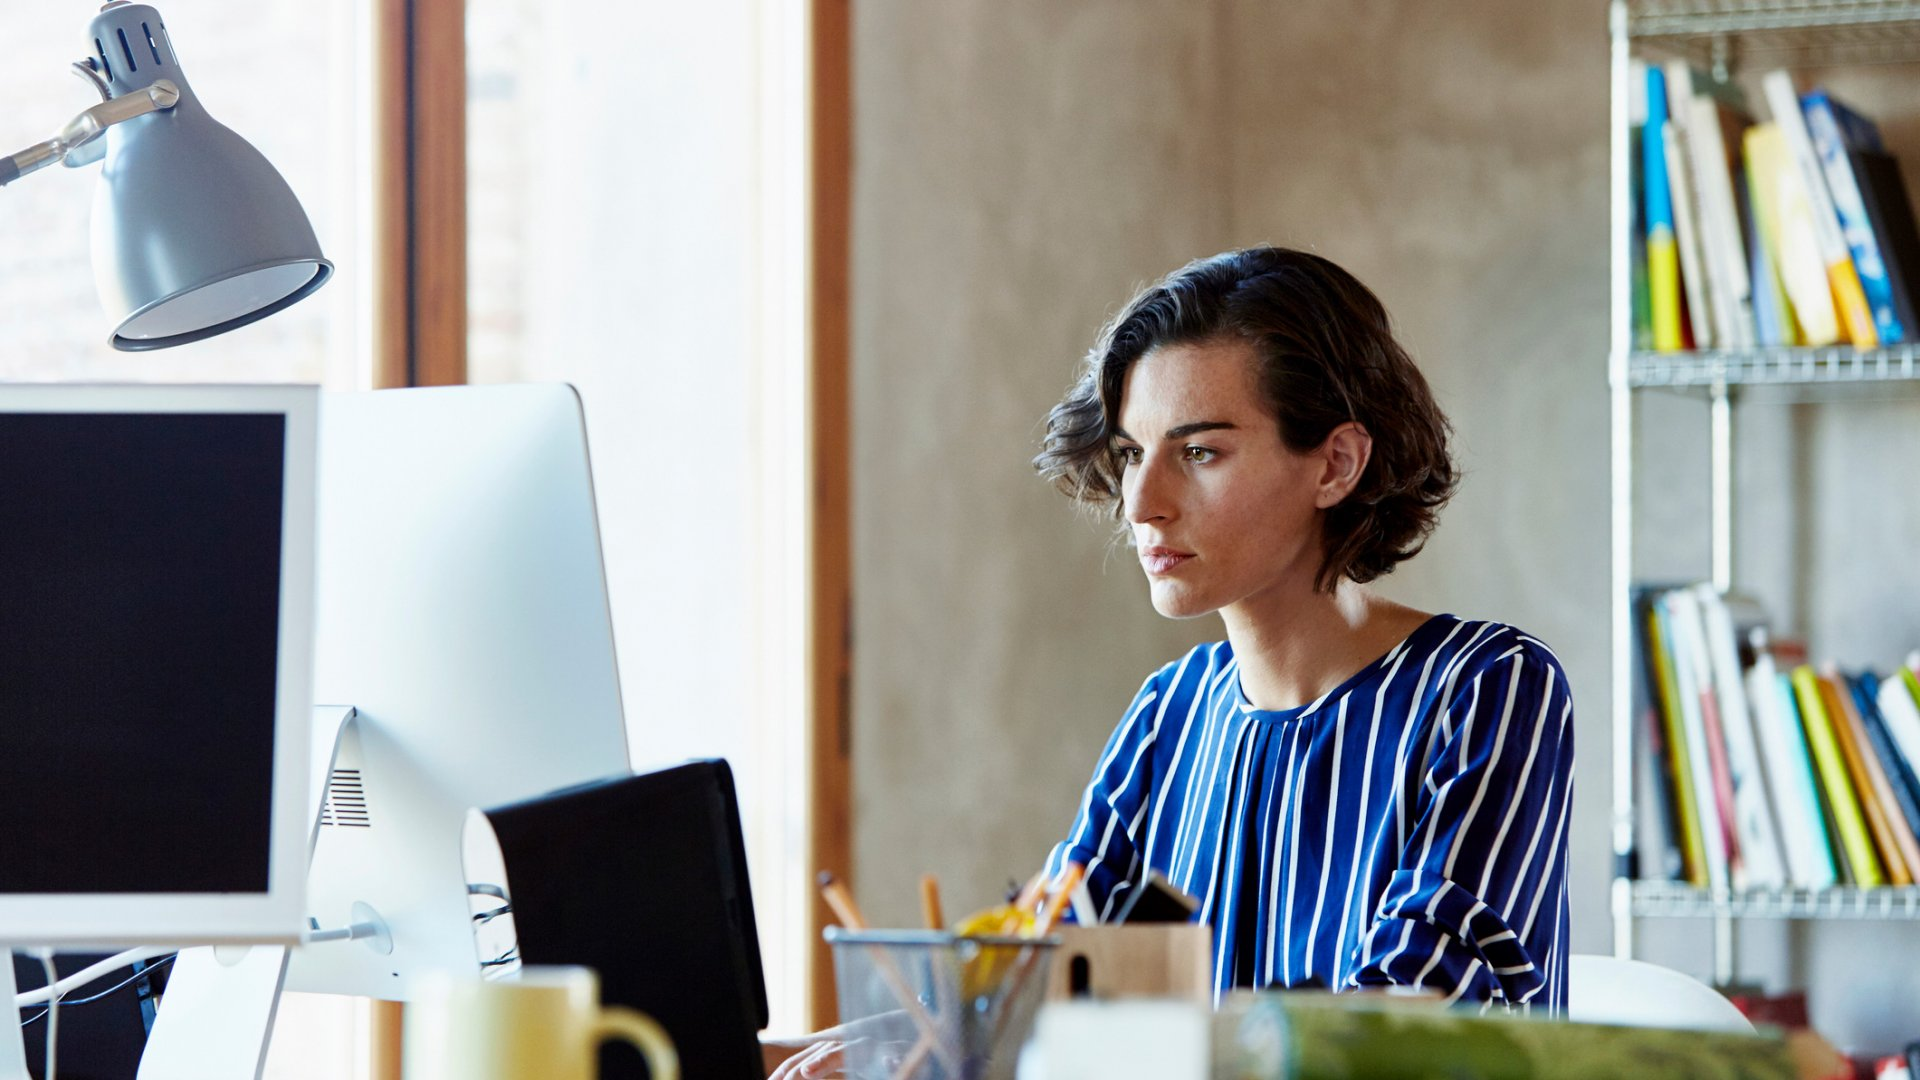 4 Tips for Hiring the Best Remote Workers